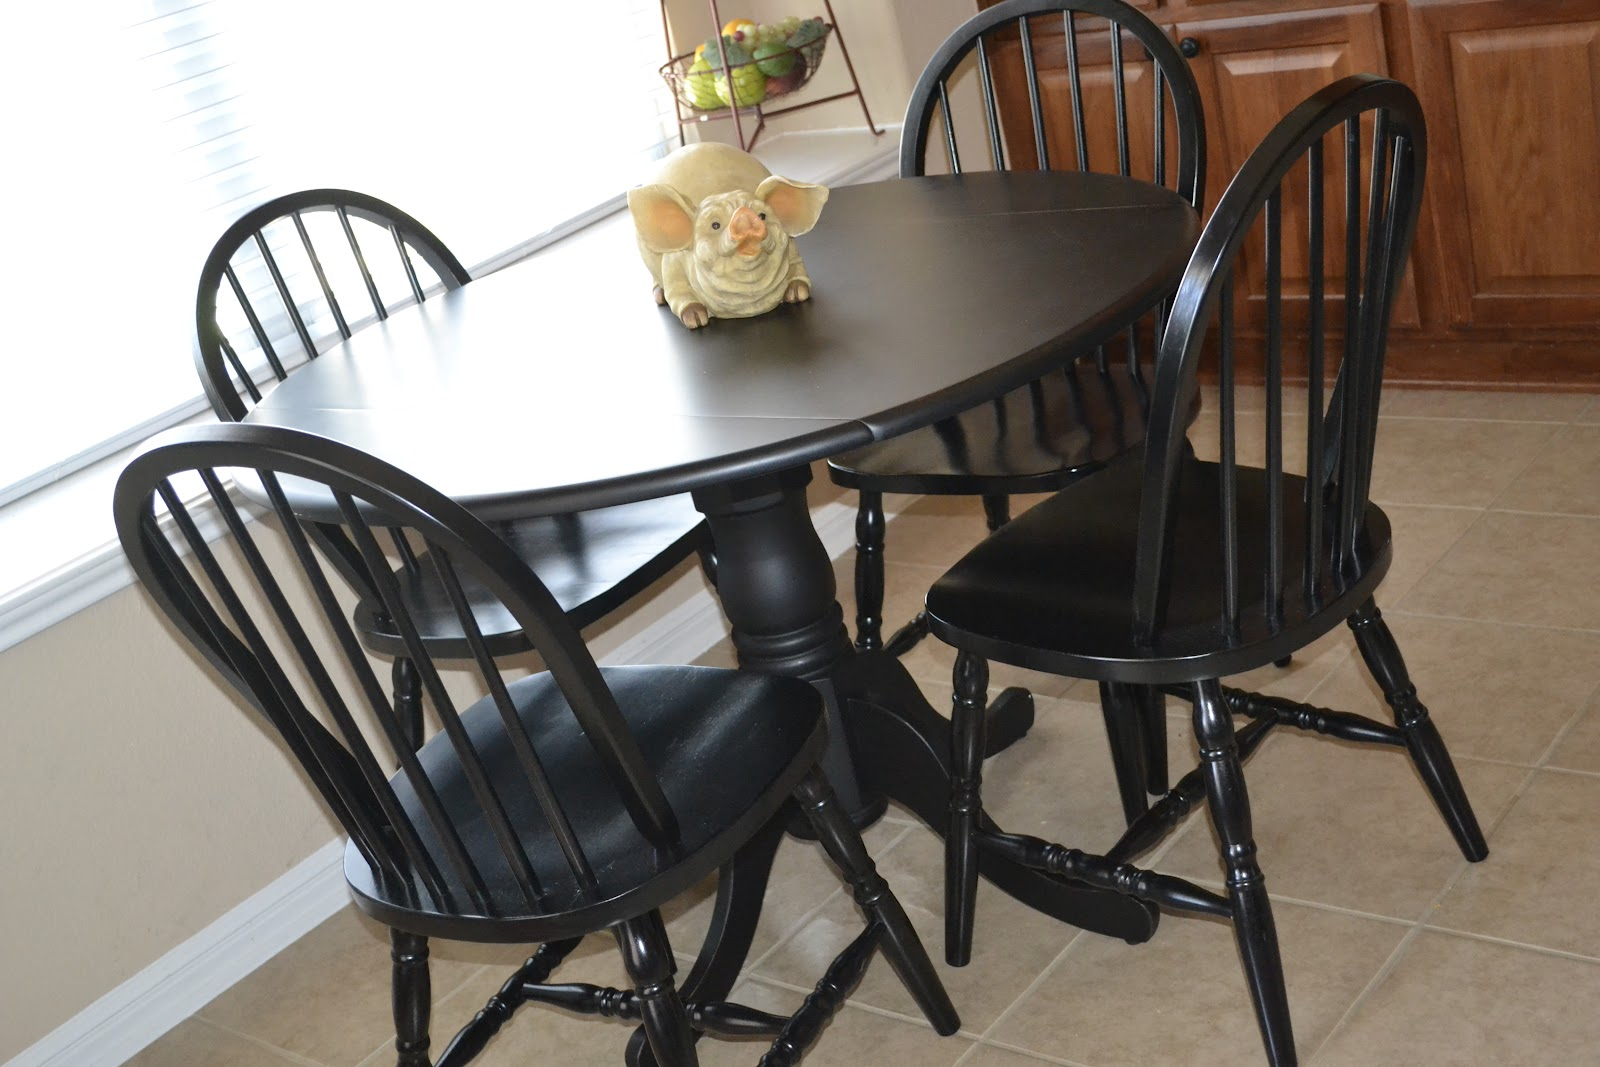 black round kitchen table and chairs arm chair with ottoman your little birdie fun new stuff